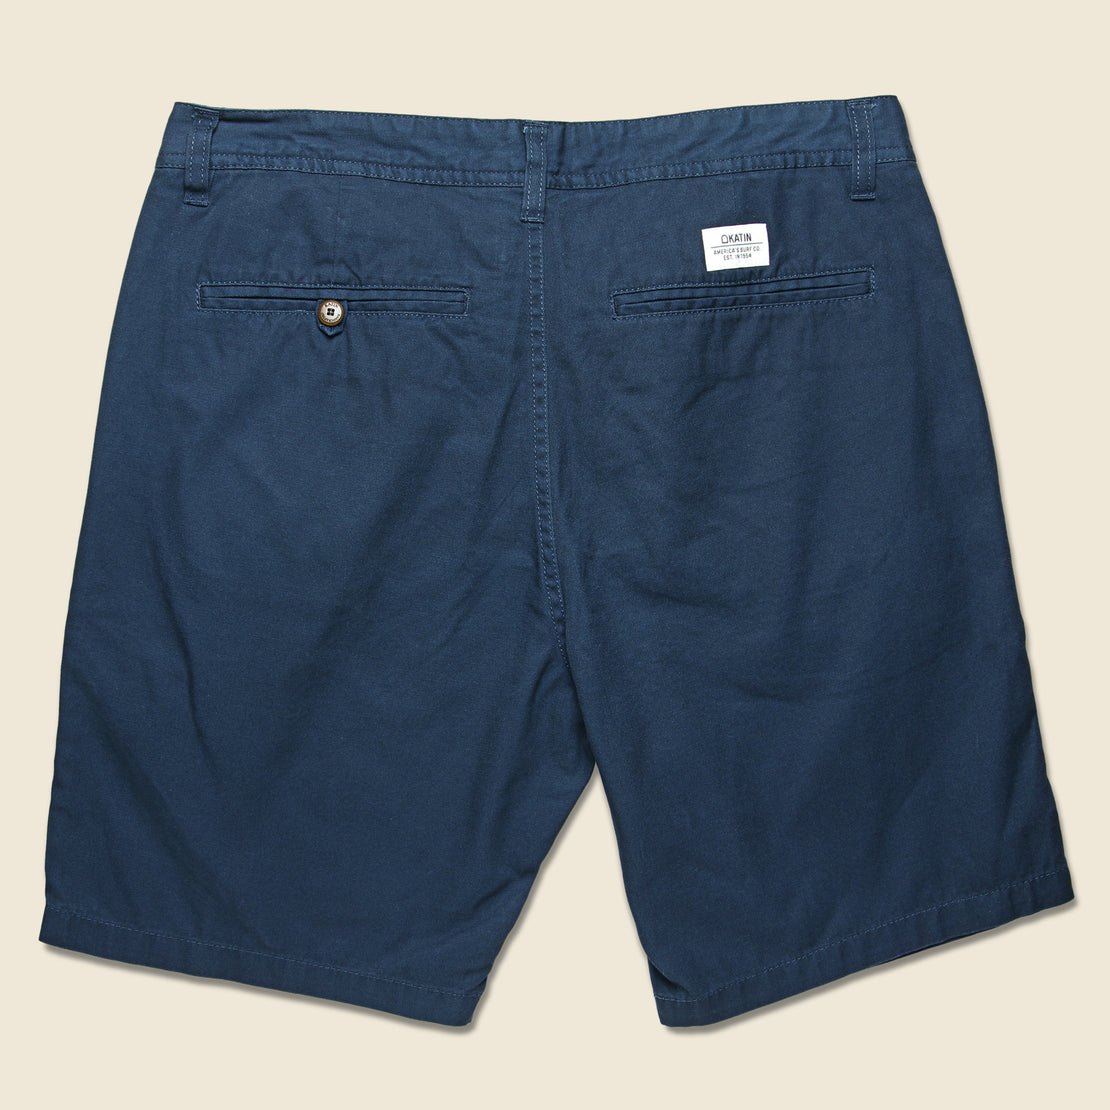 Cove Short - Navy - Katin - STAG Provisions - Shorts - Solid